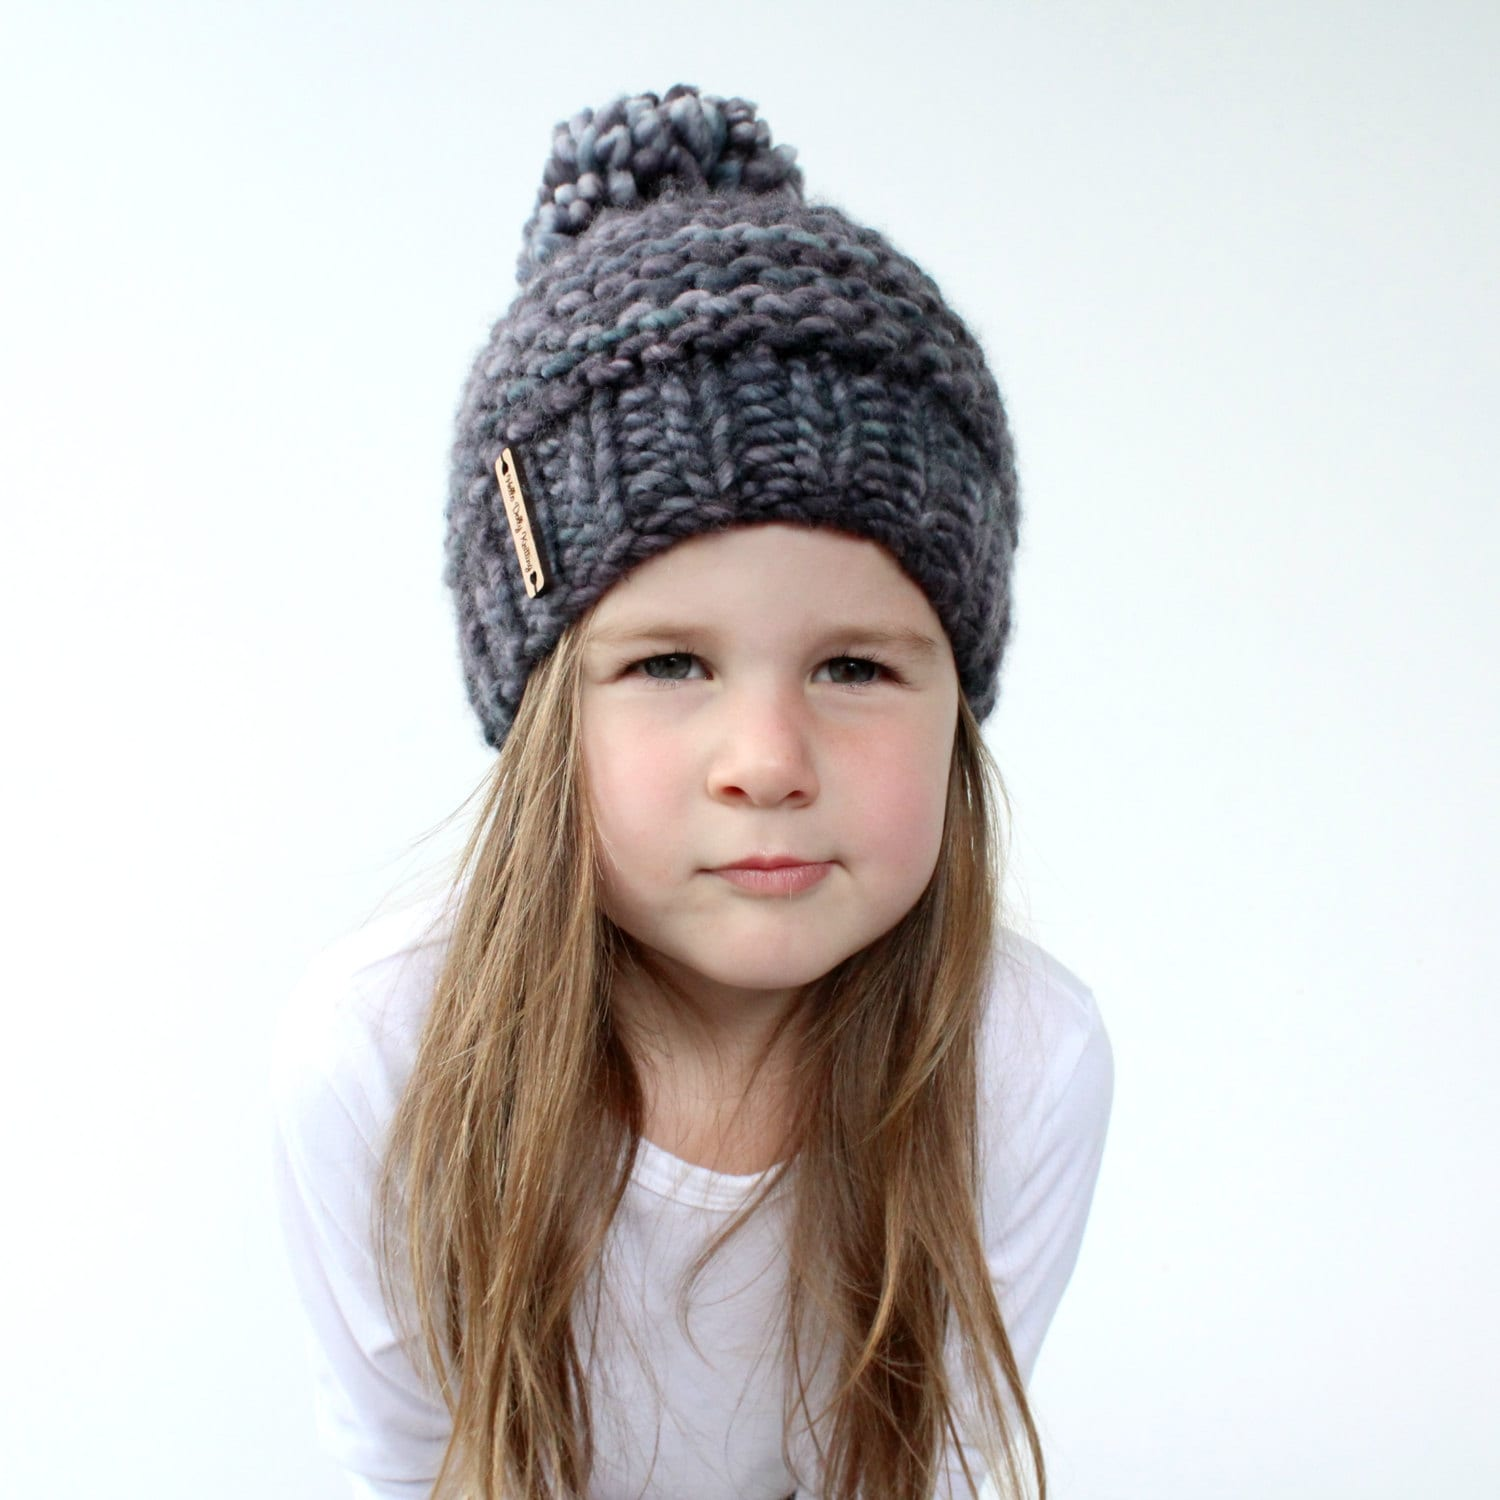 Chunky knit hat pattern pdf knitting pattern super bulky beanie this is a digital file dt1010fo